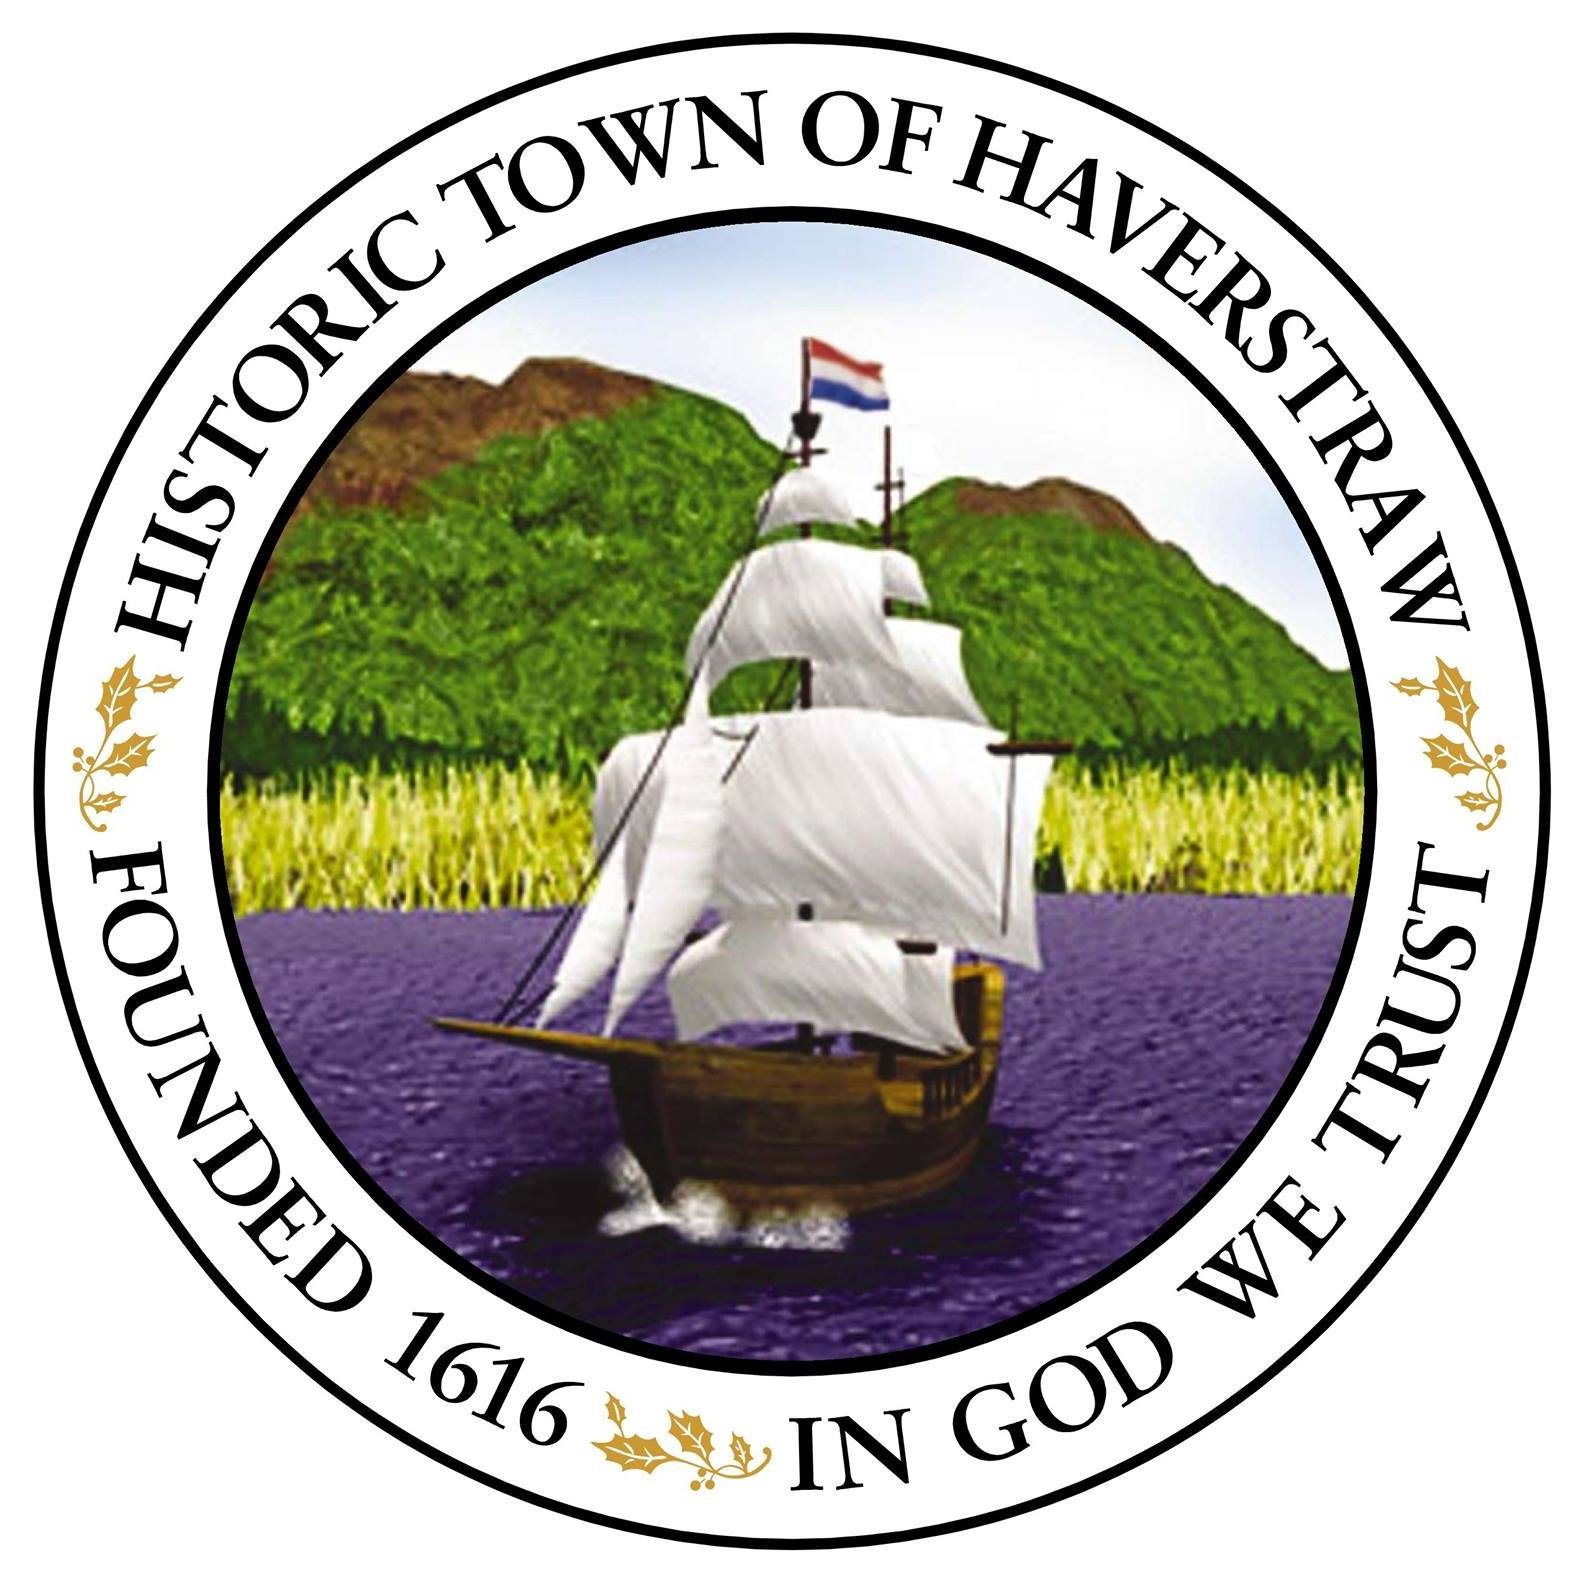 Town of Haverstraw logo on RocklandNews website